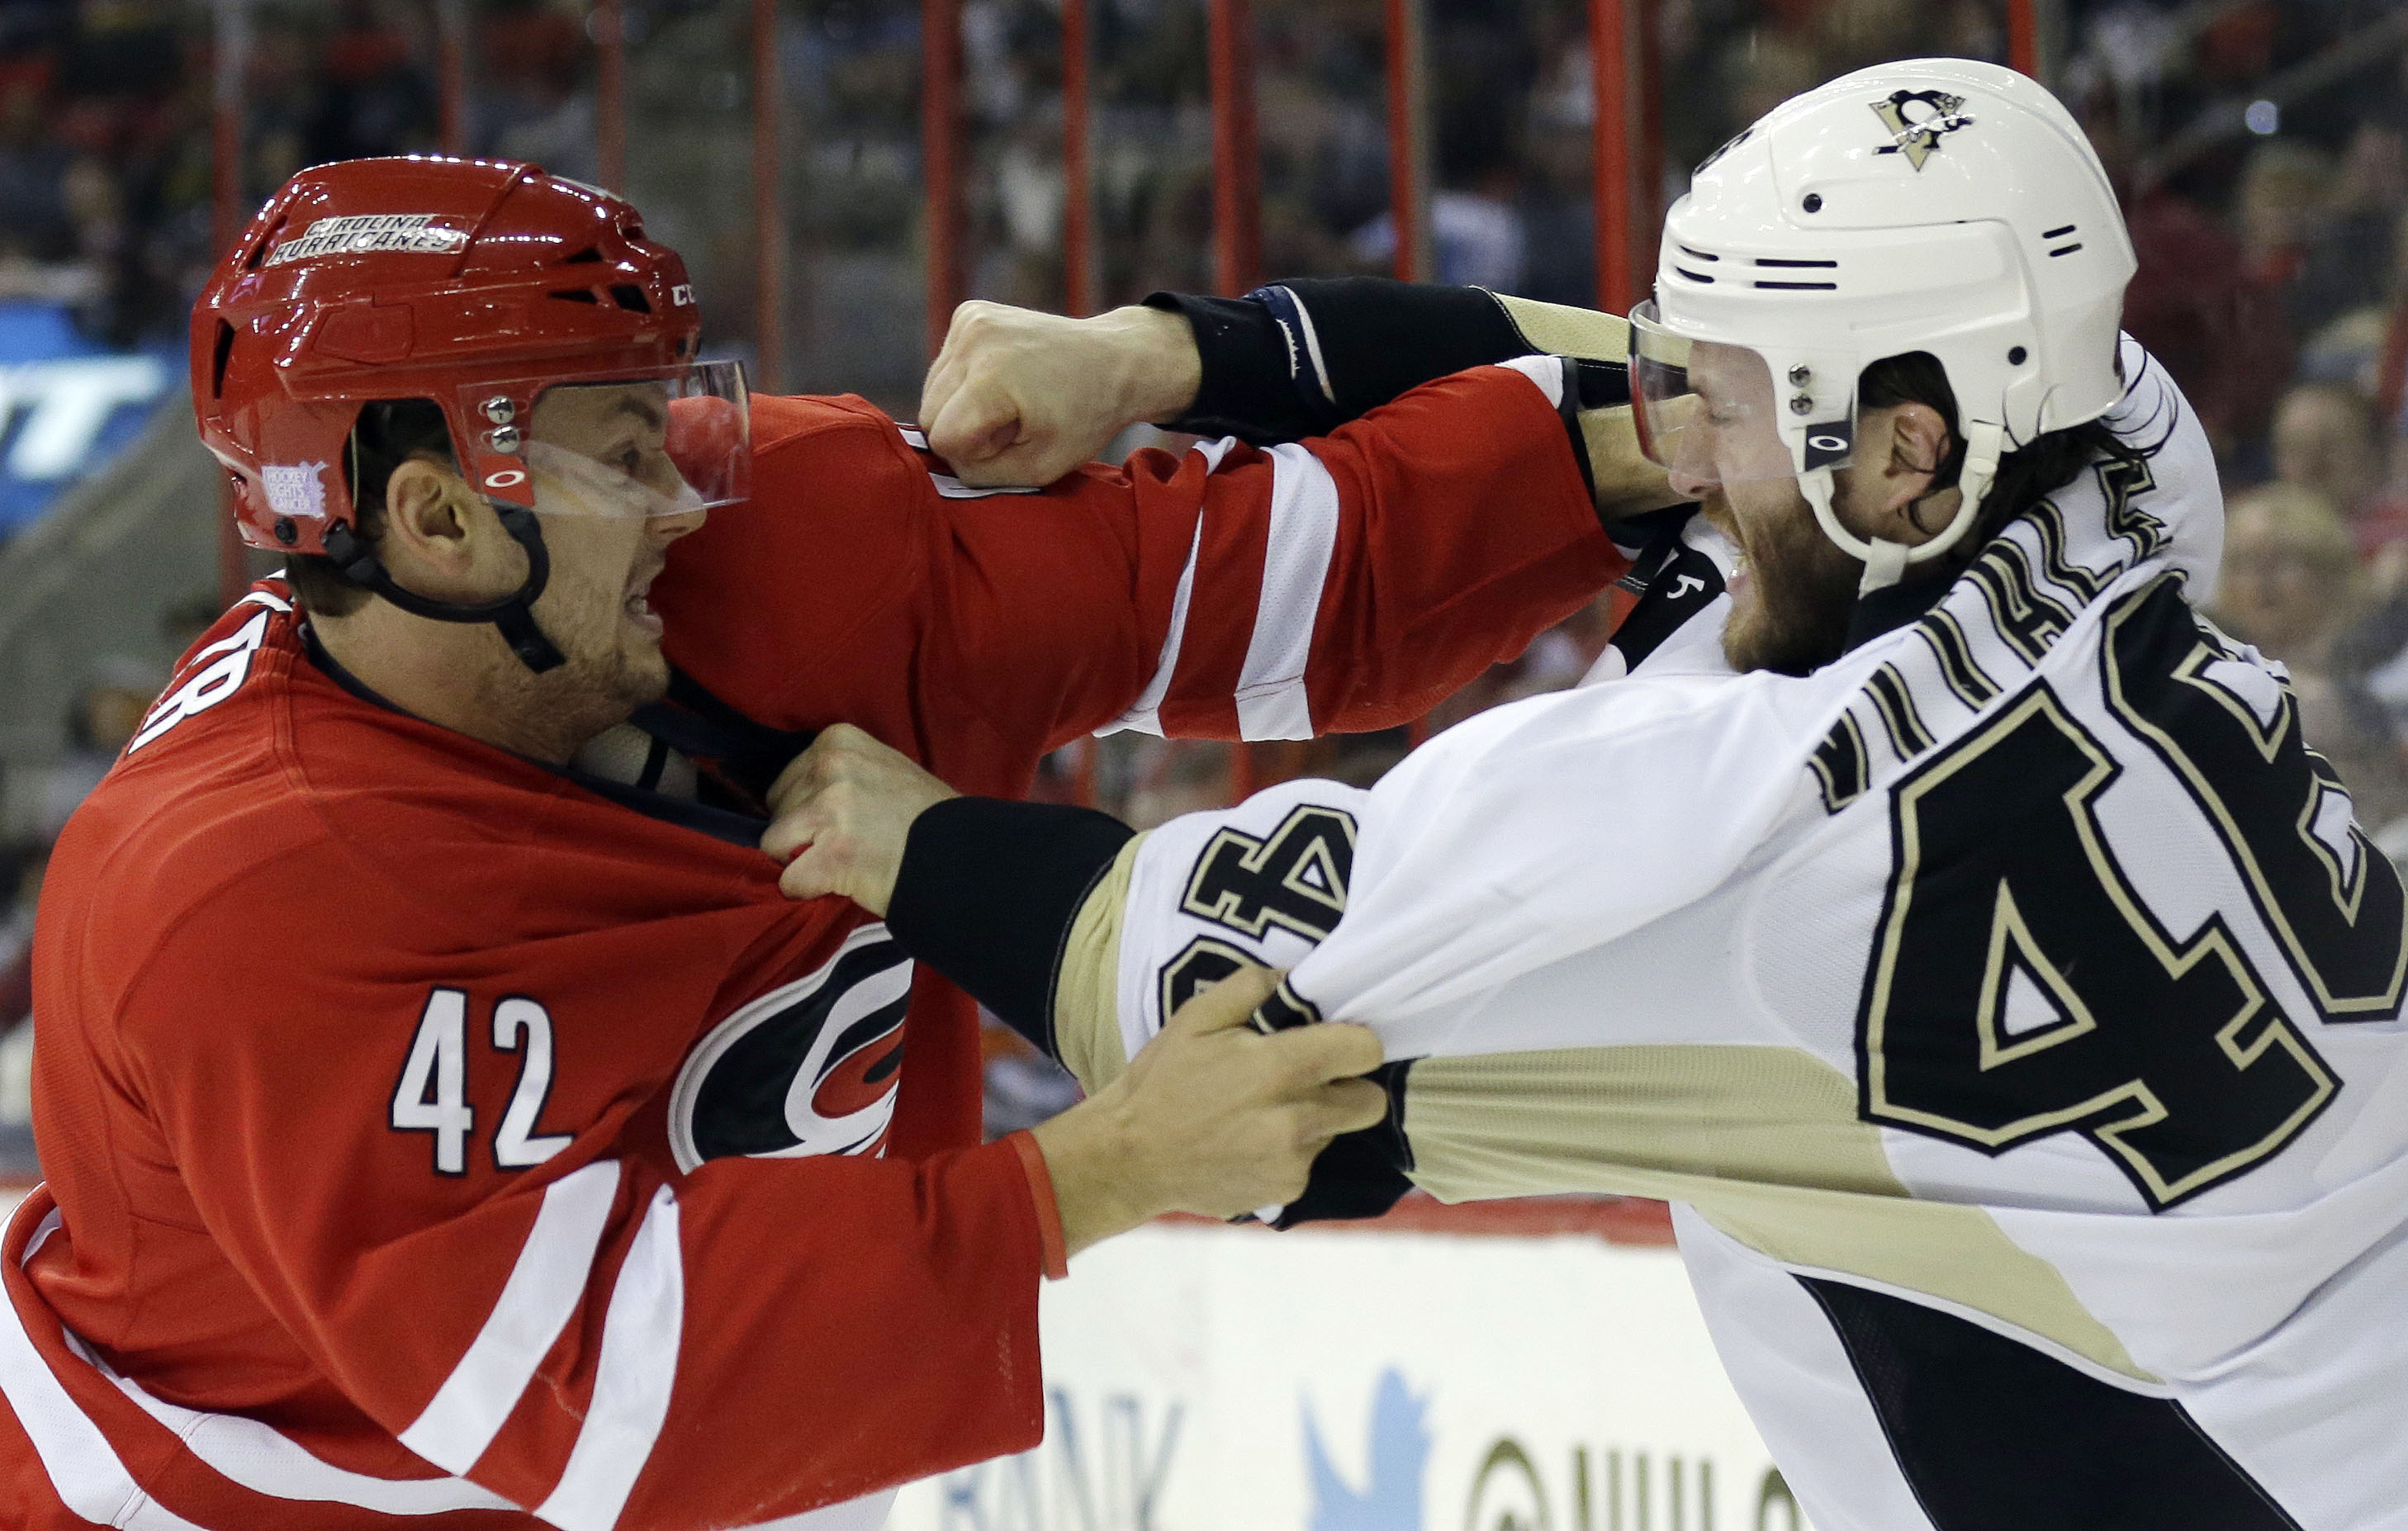 Carolina Hurricanes' Brett Sutter, left, and Pittsburgh Penguins' Joe Vitale, right, fight during the first period of an NHL hockey game in Raleigh, N.C., Monday, Oct. 28, 2013